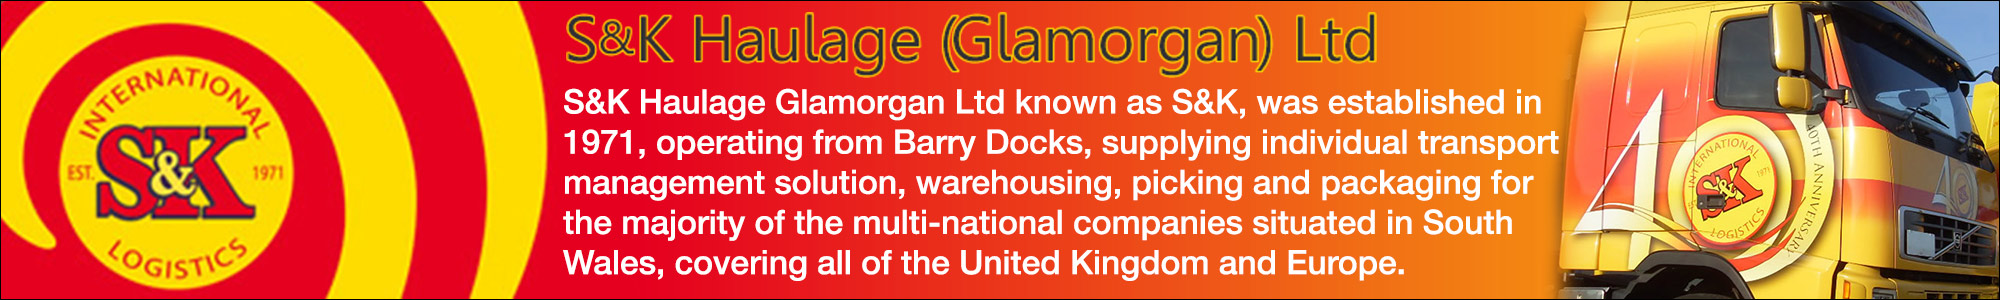 S K Haulage Glamorgan Ltd